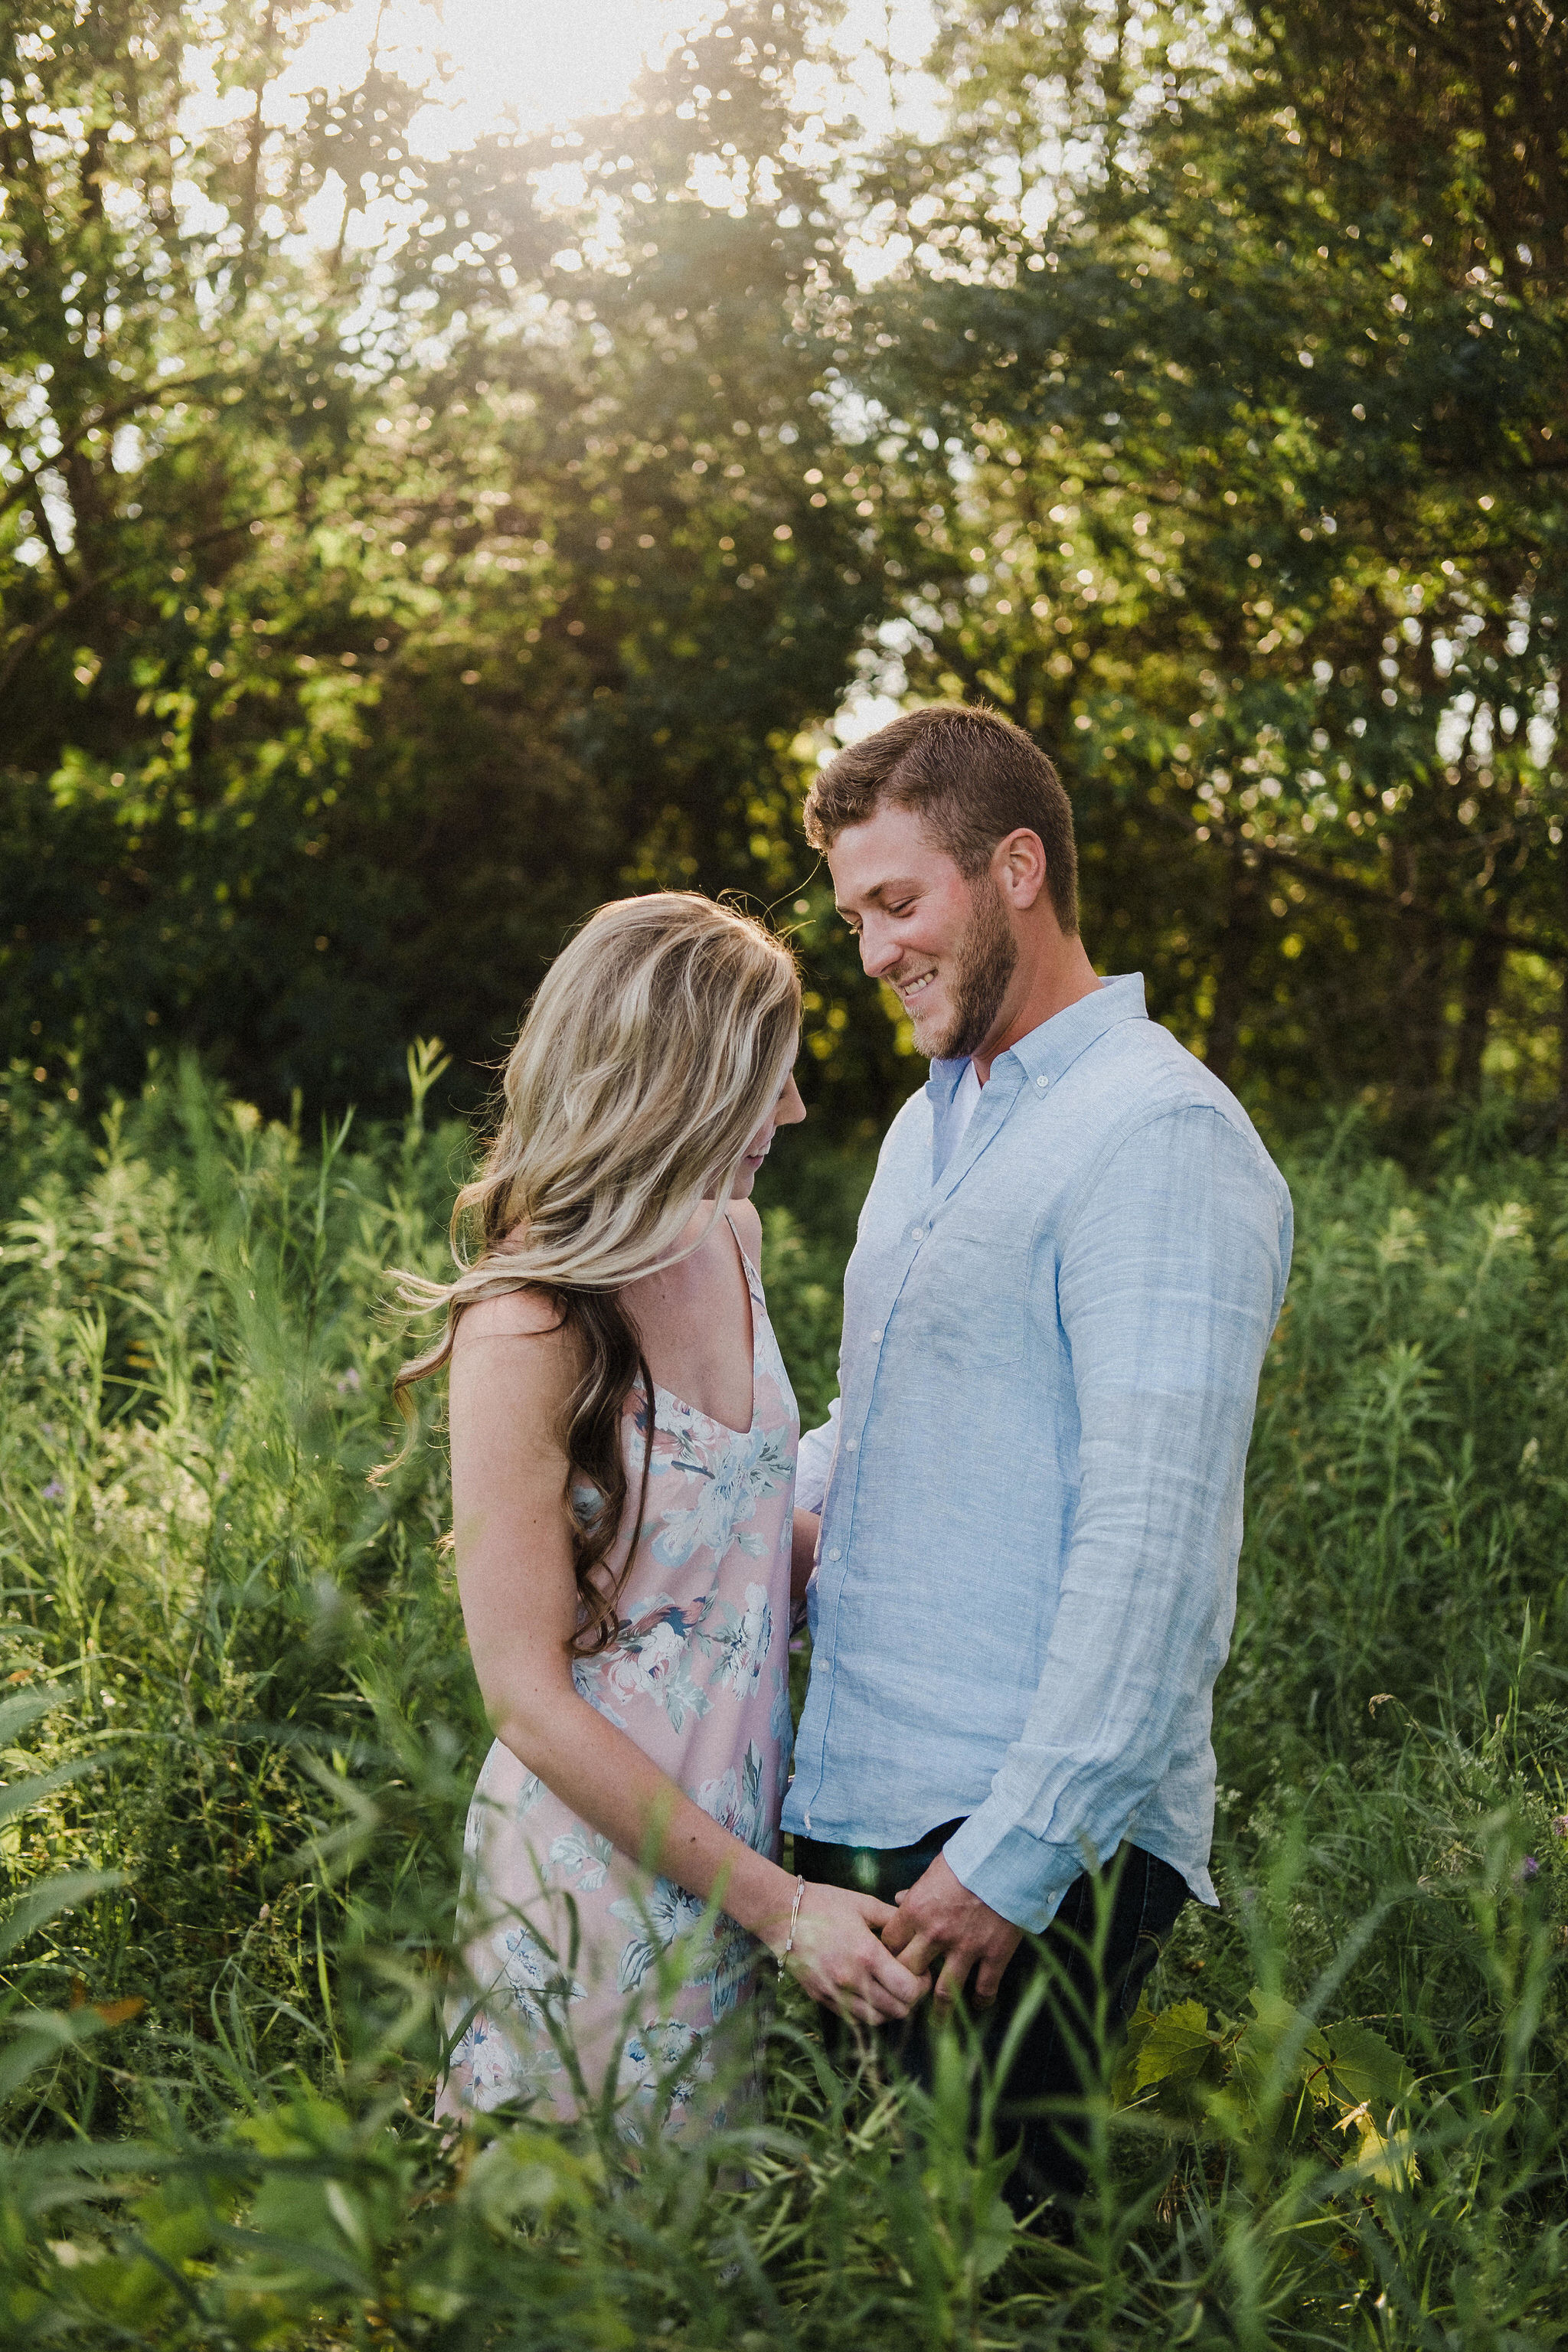 Whitby Engagement Photos, Belcroft Estate Wedding, Toronto Wedding Photographer